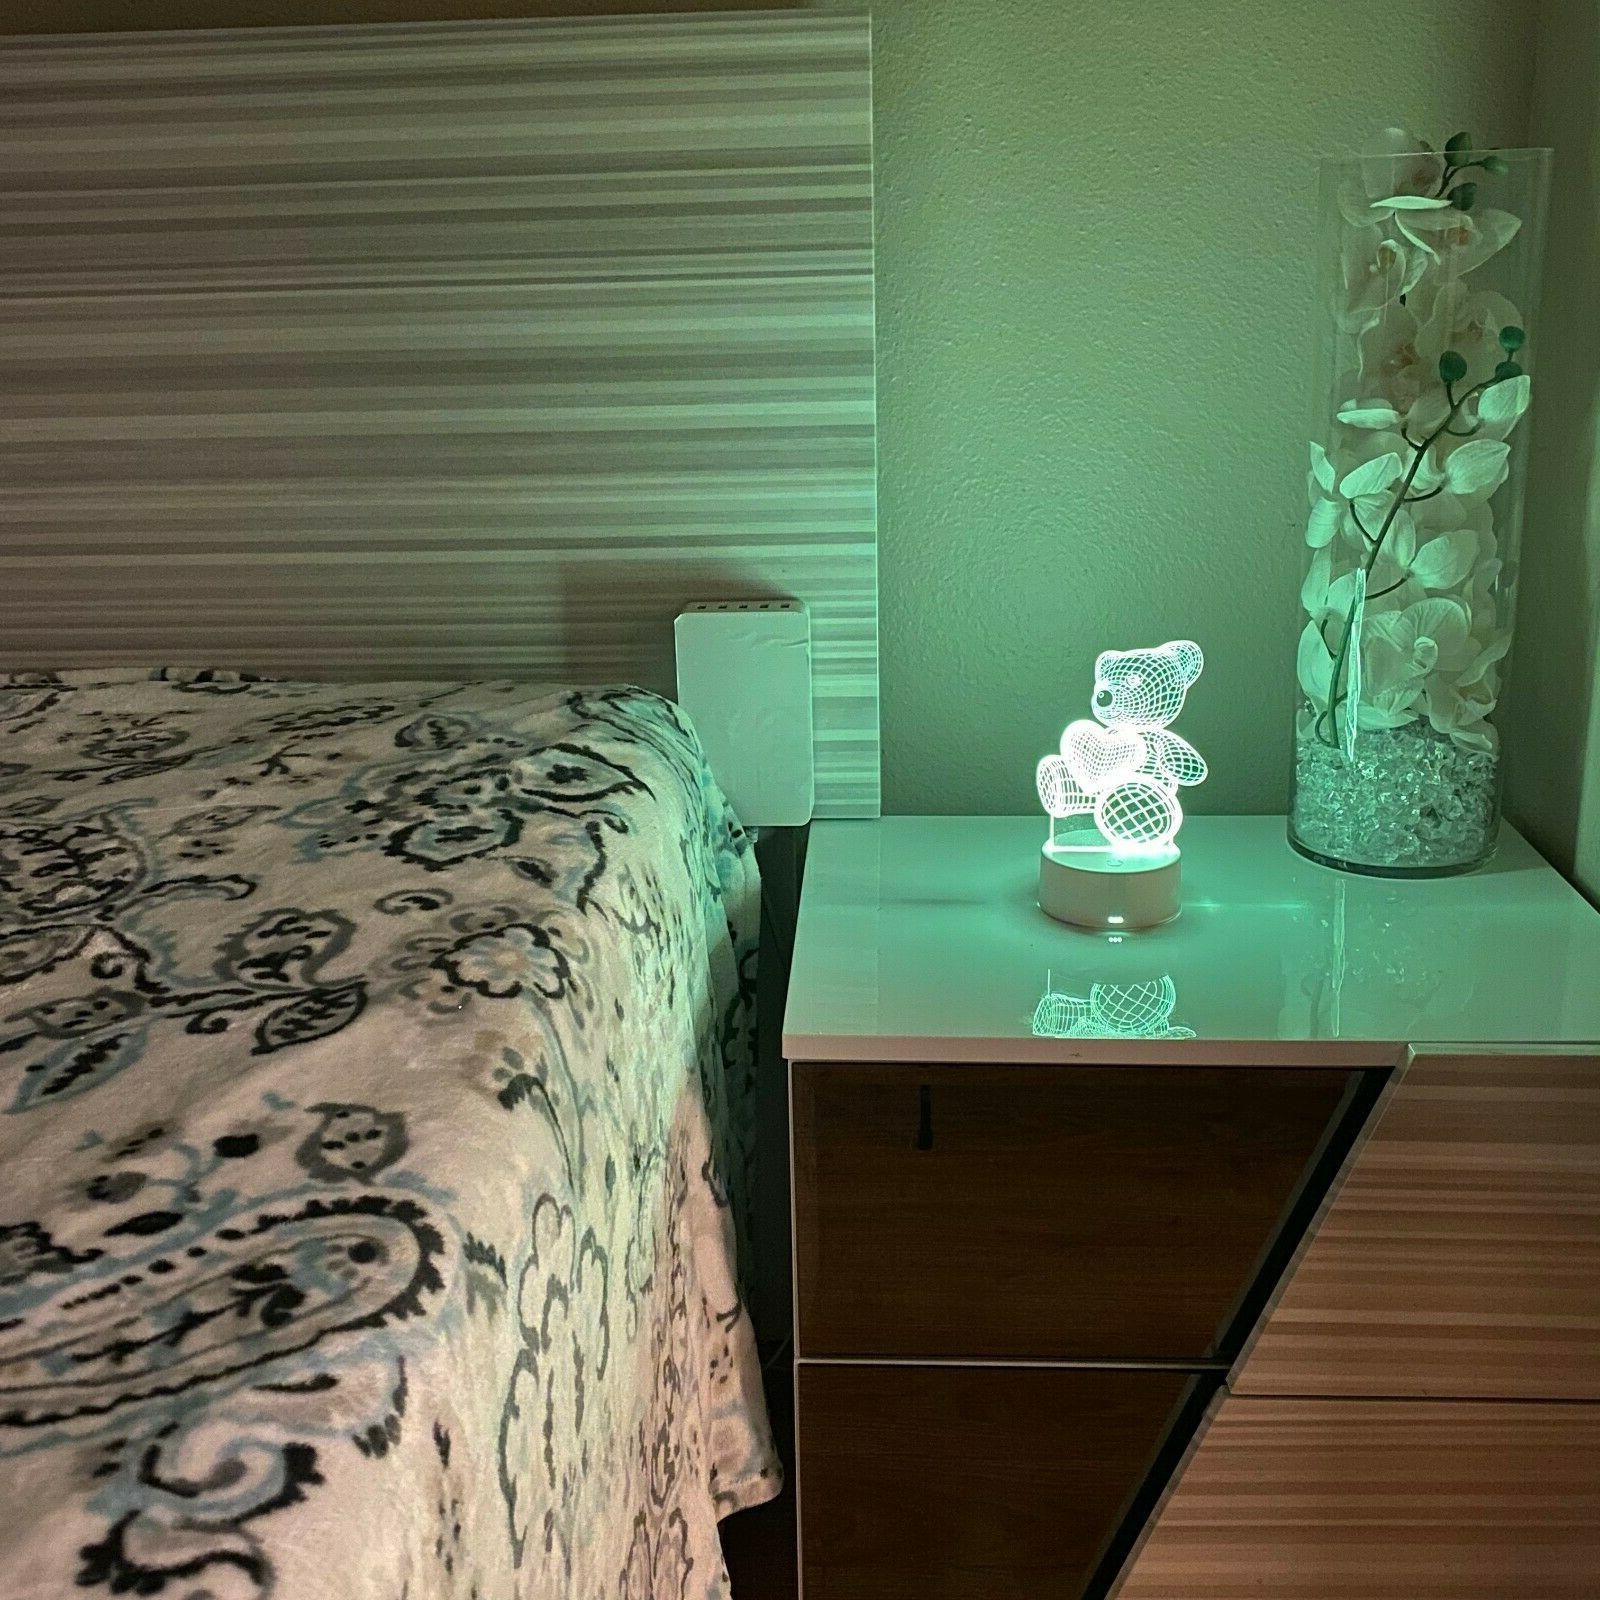 Teddy illusion Visual Night Light 7 LED Table Bedroom